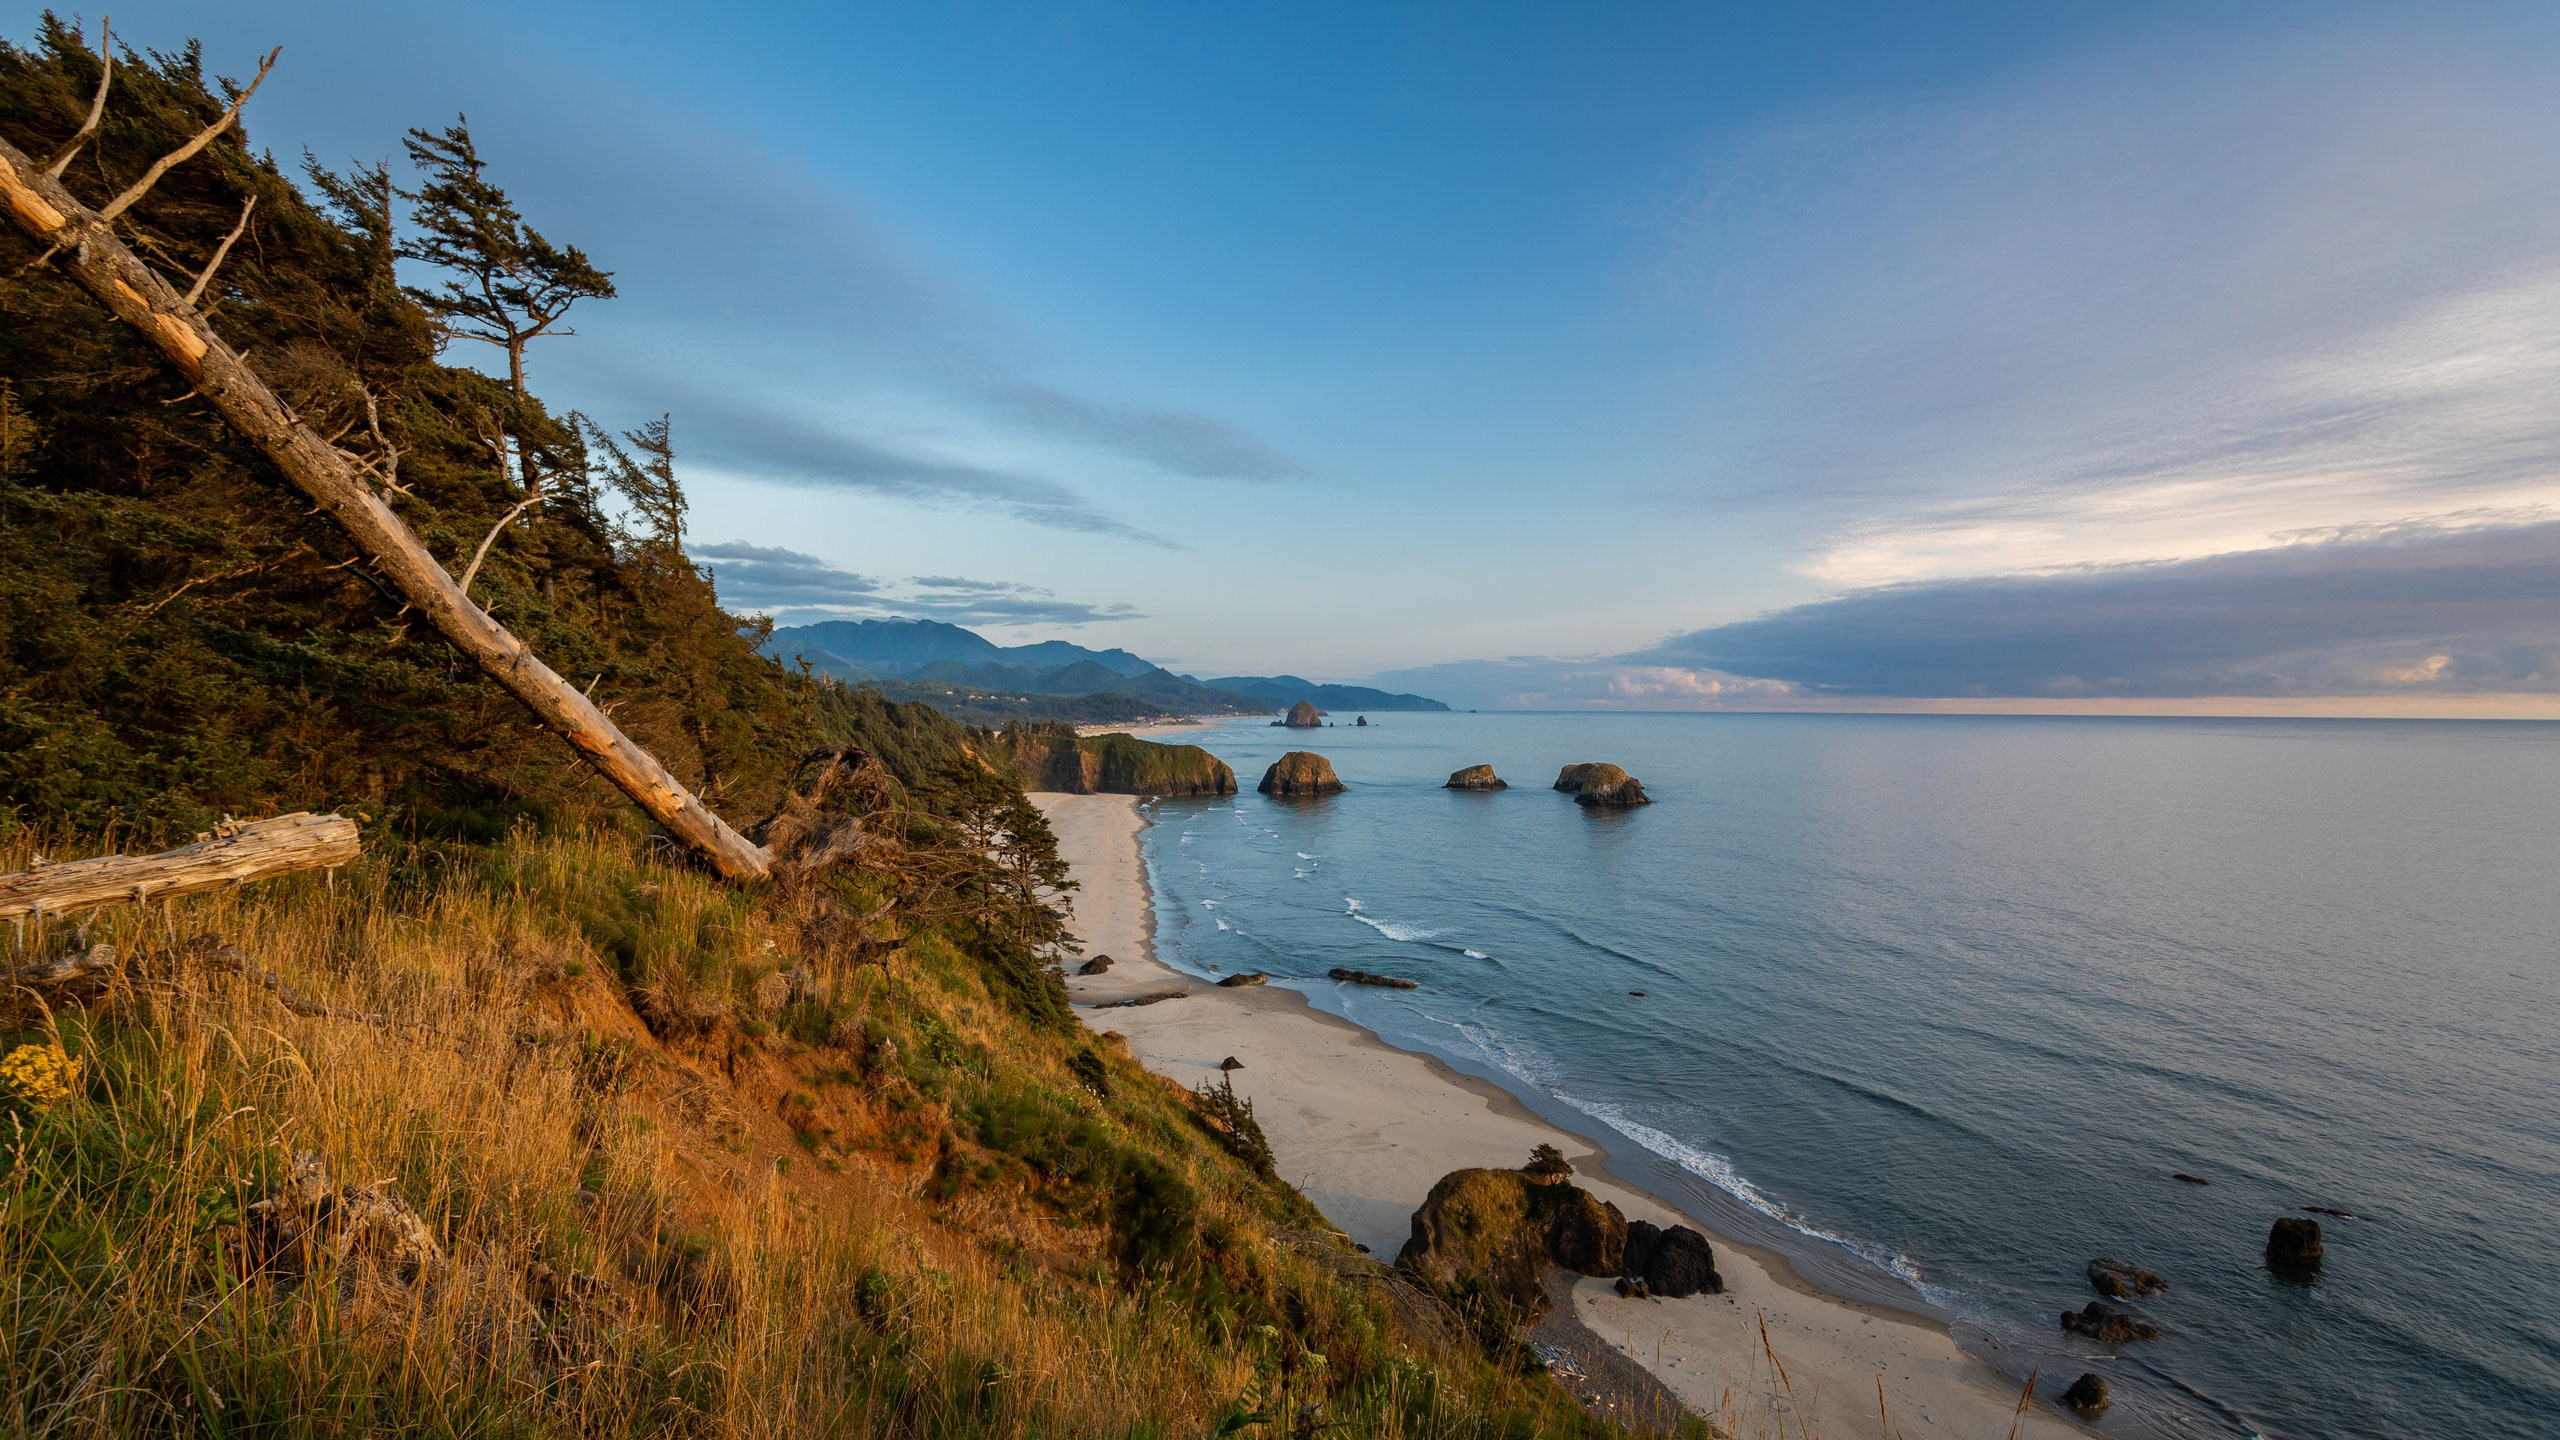 Explore the great outdoors with a trip to Ecola State Park, a popular green space in Oregon Coast. Stroll along the beaches or discover the area's sunsets.